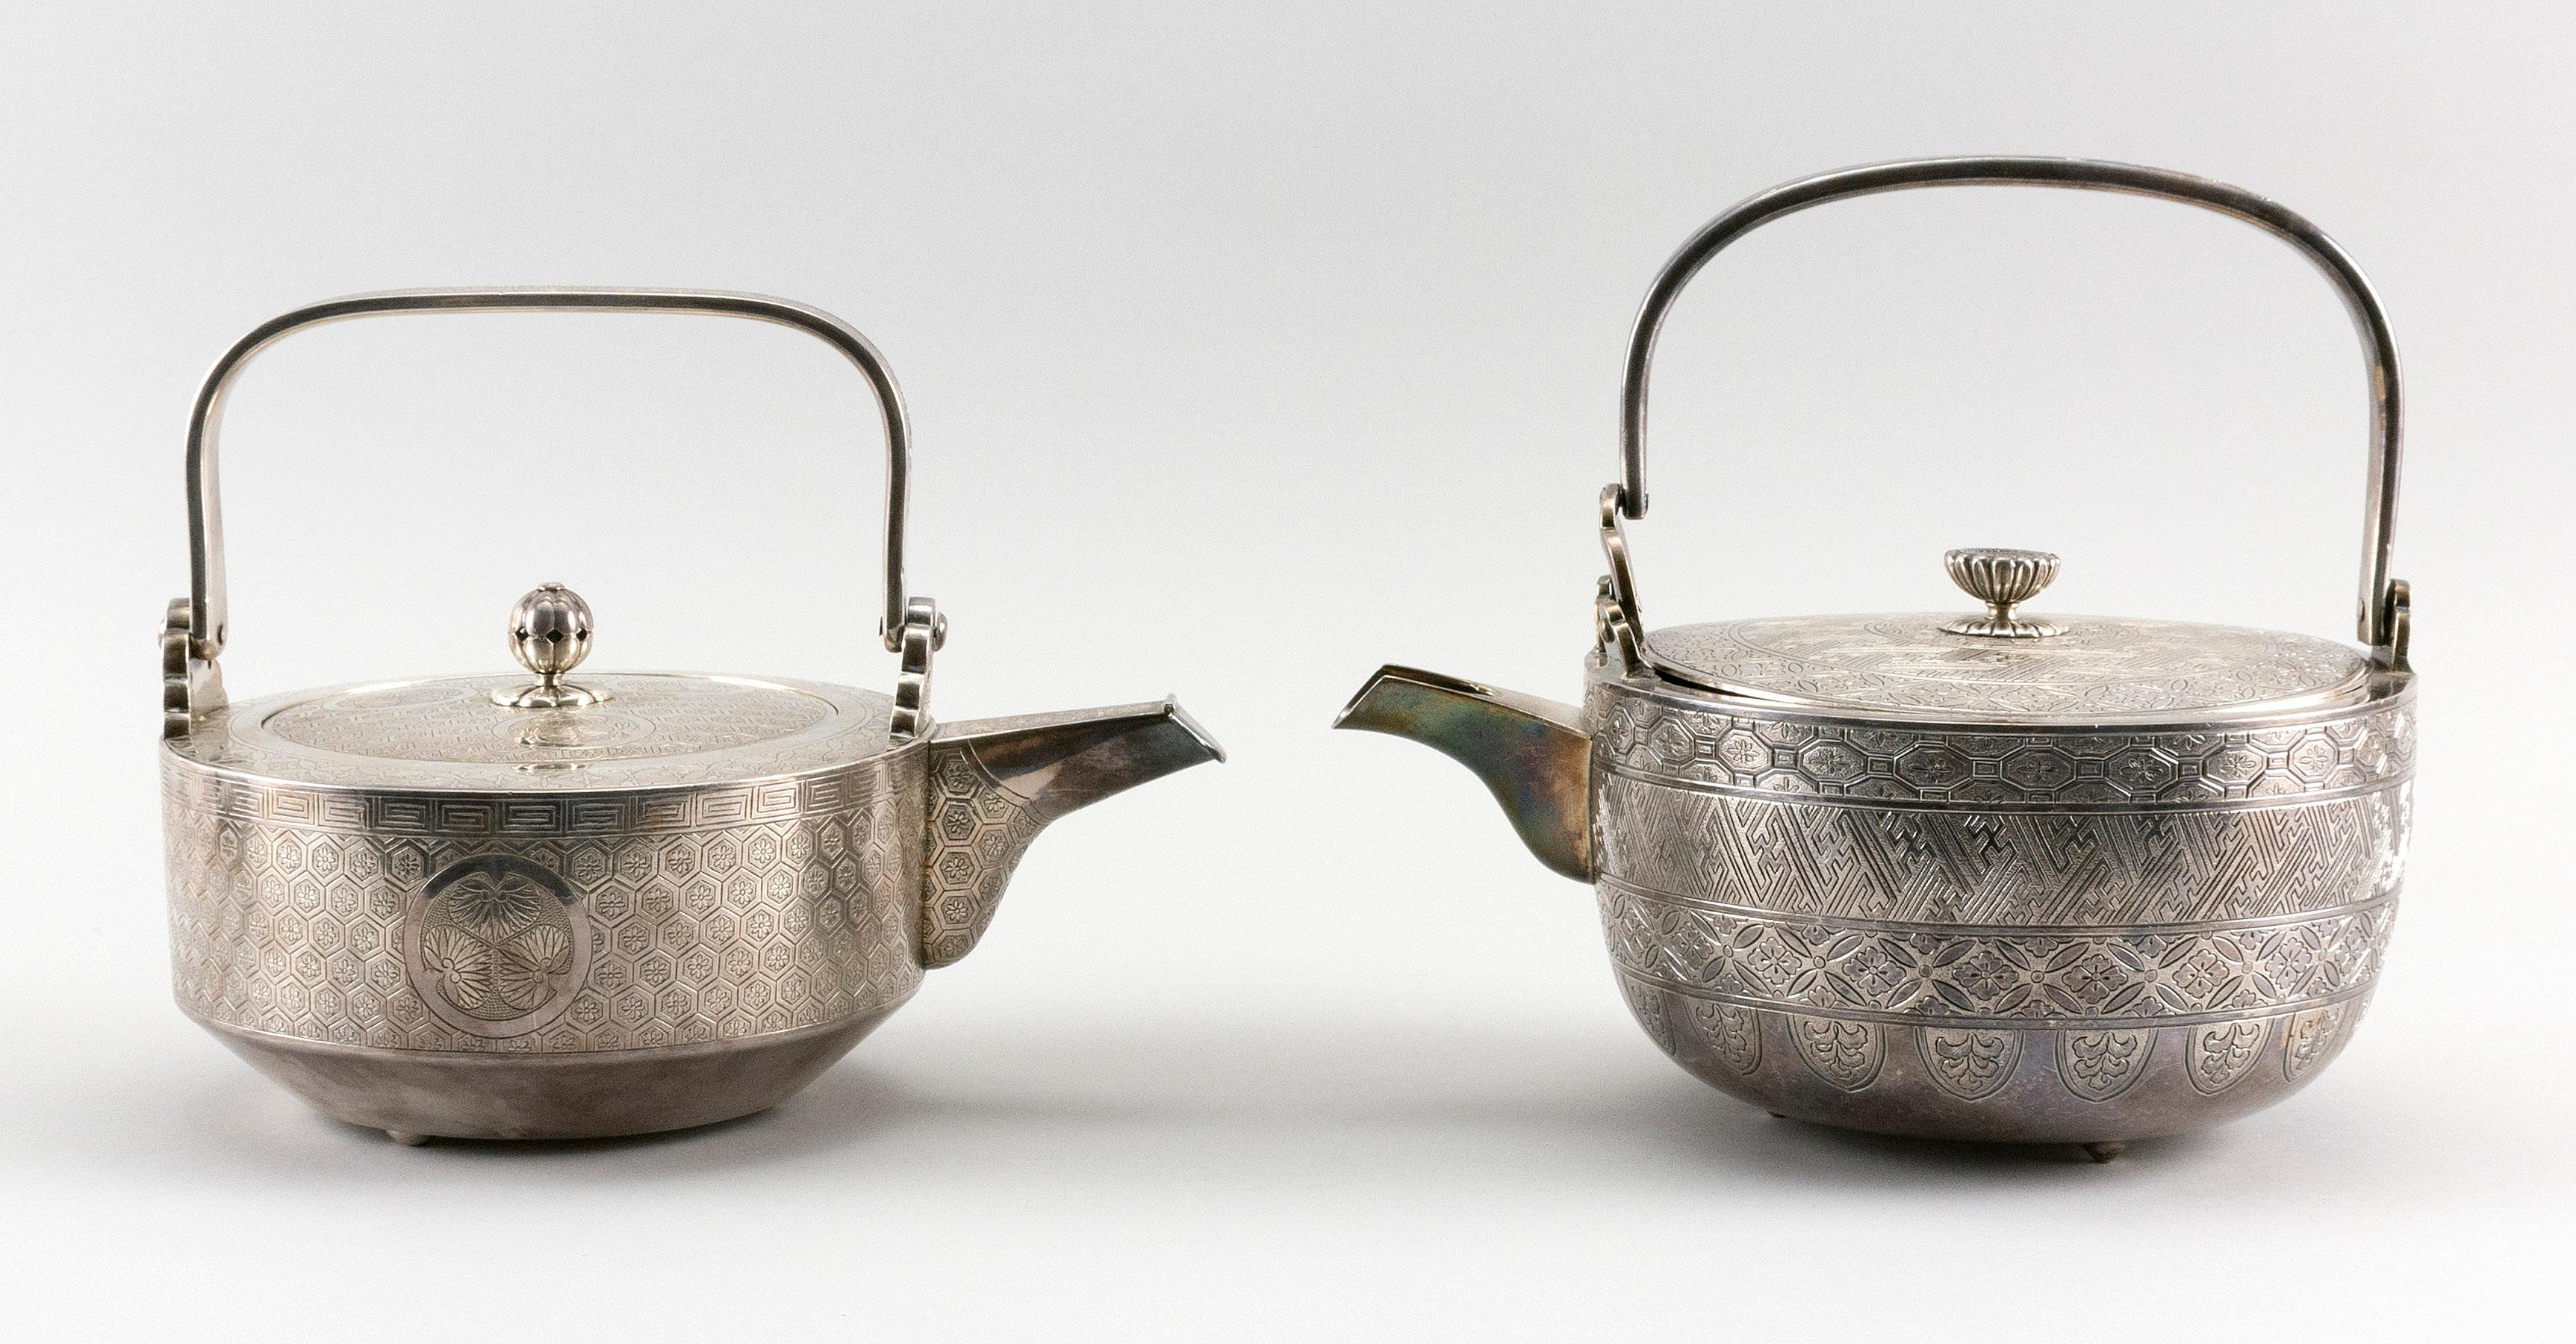 TWO JAPANESE SILVER CHOSHI OR SAKE EWERS Both of typical form, with hand-chased geometric and stylized foliate designs. Both with ha...